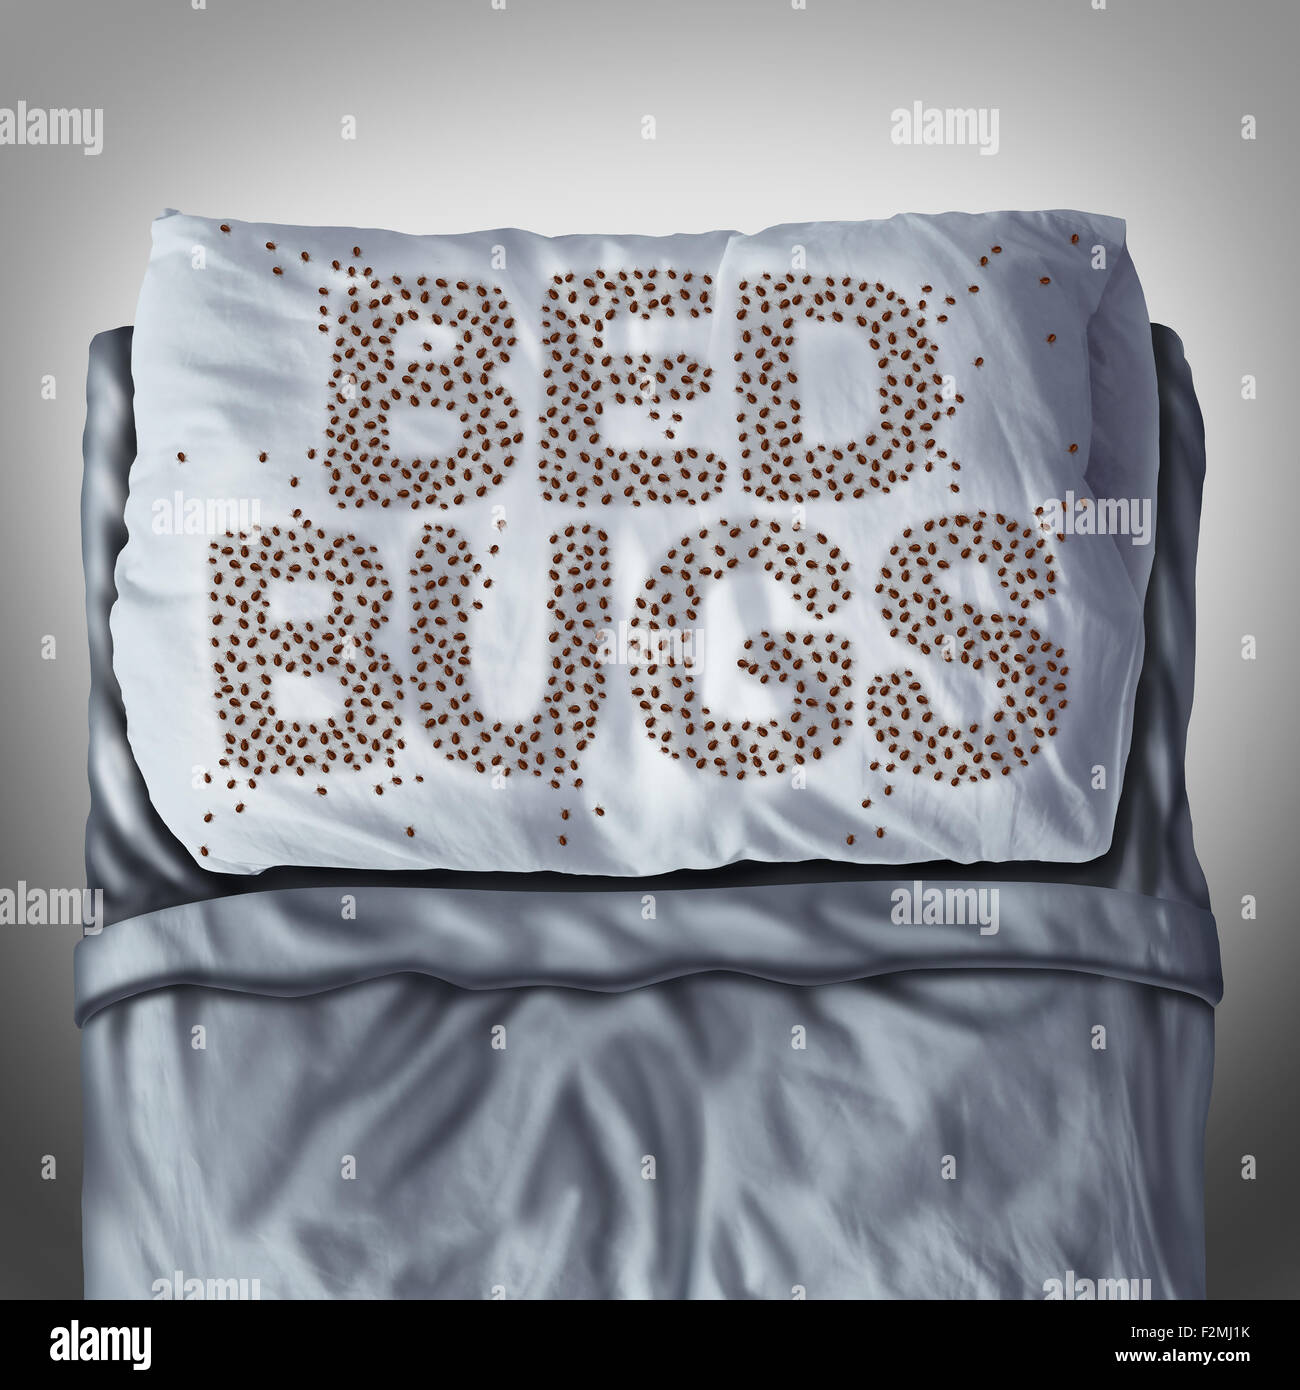 Bed bug on pillow and in bed as a bedbug infestation concept shaped as text letters as parasitic insect pests under - Stock Image